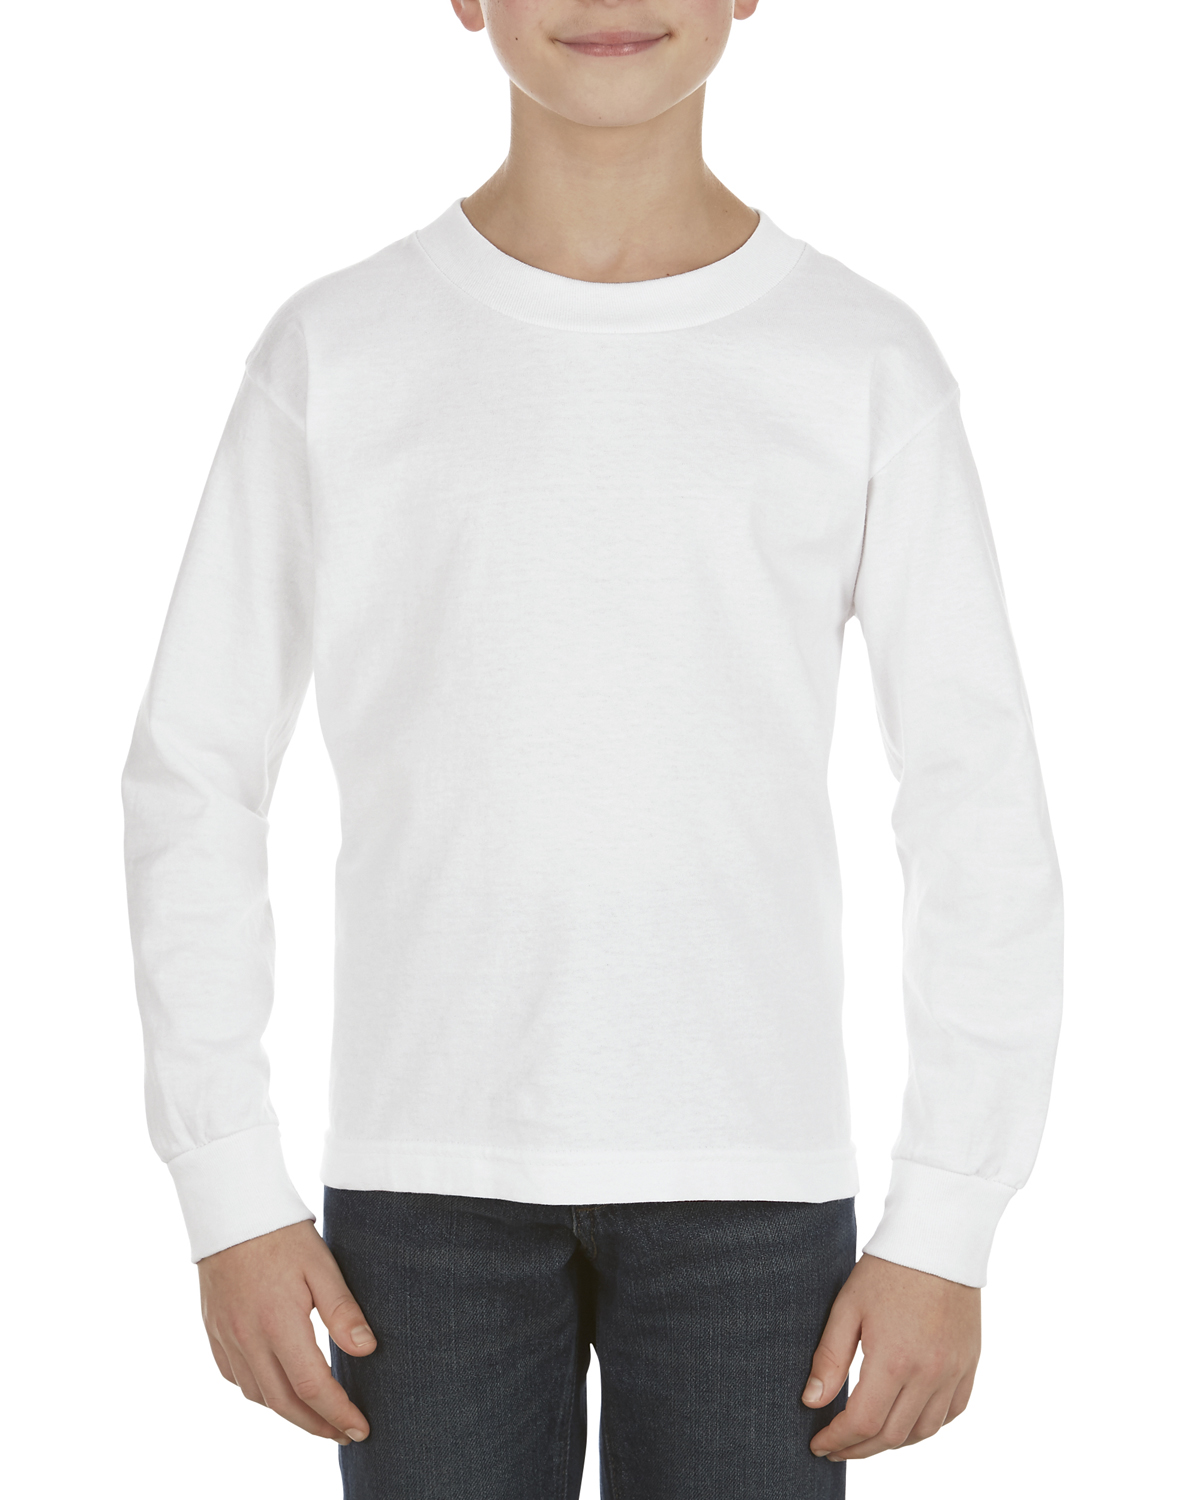 Youth 6.0 oz., 100% Cotton Long-Sleeve T-Shirt